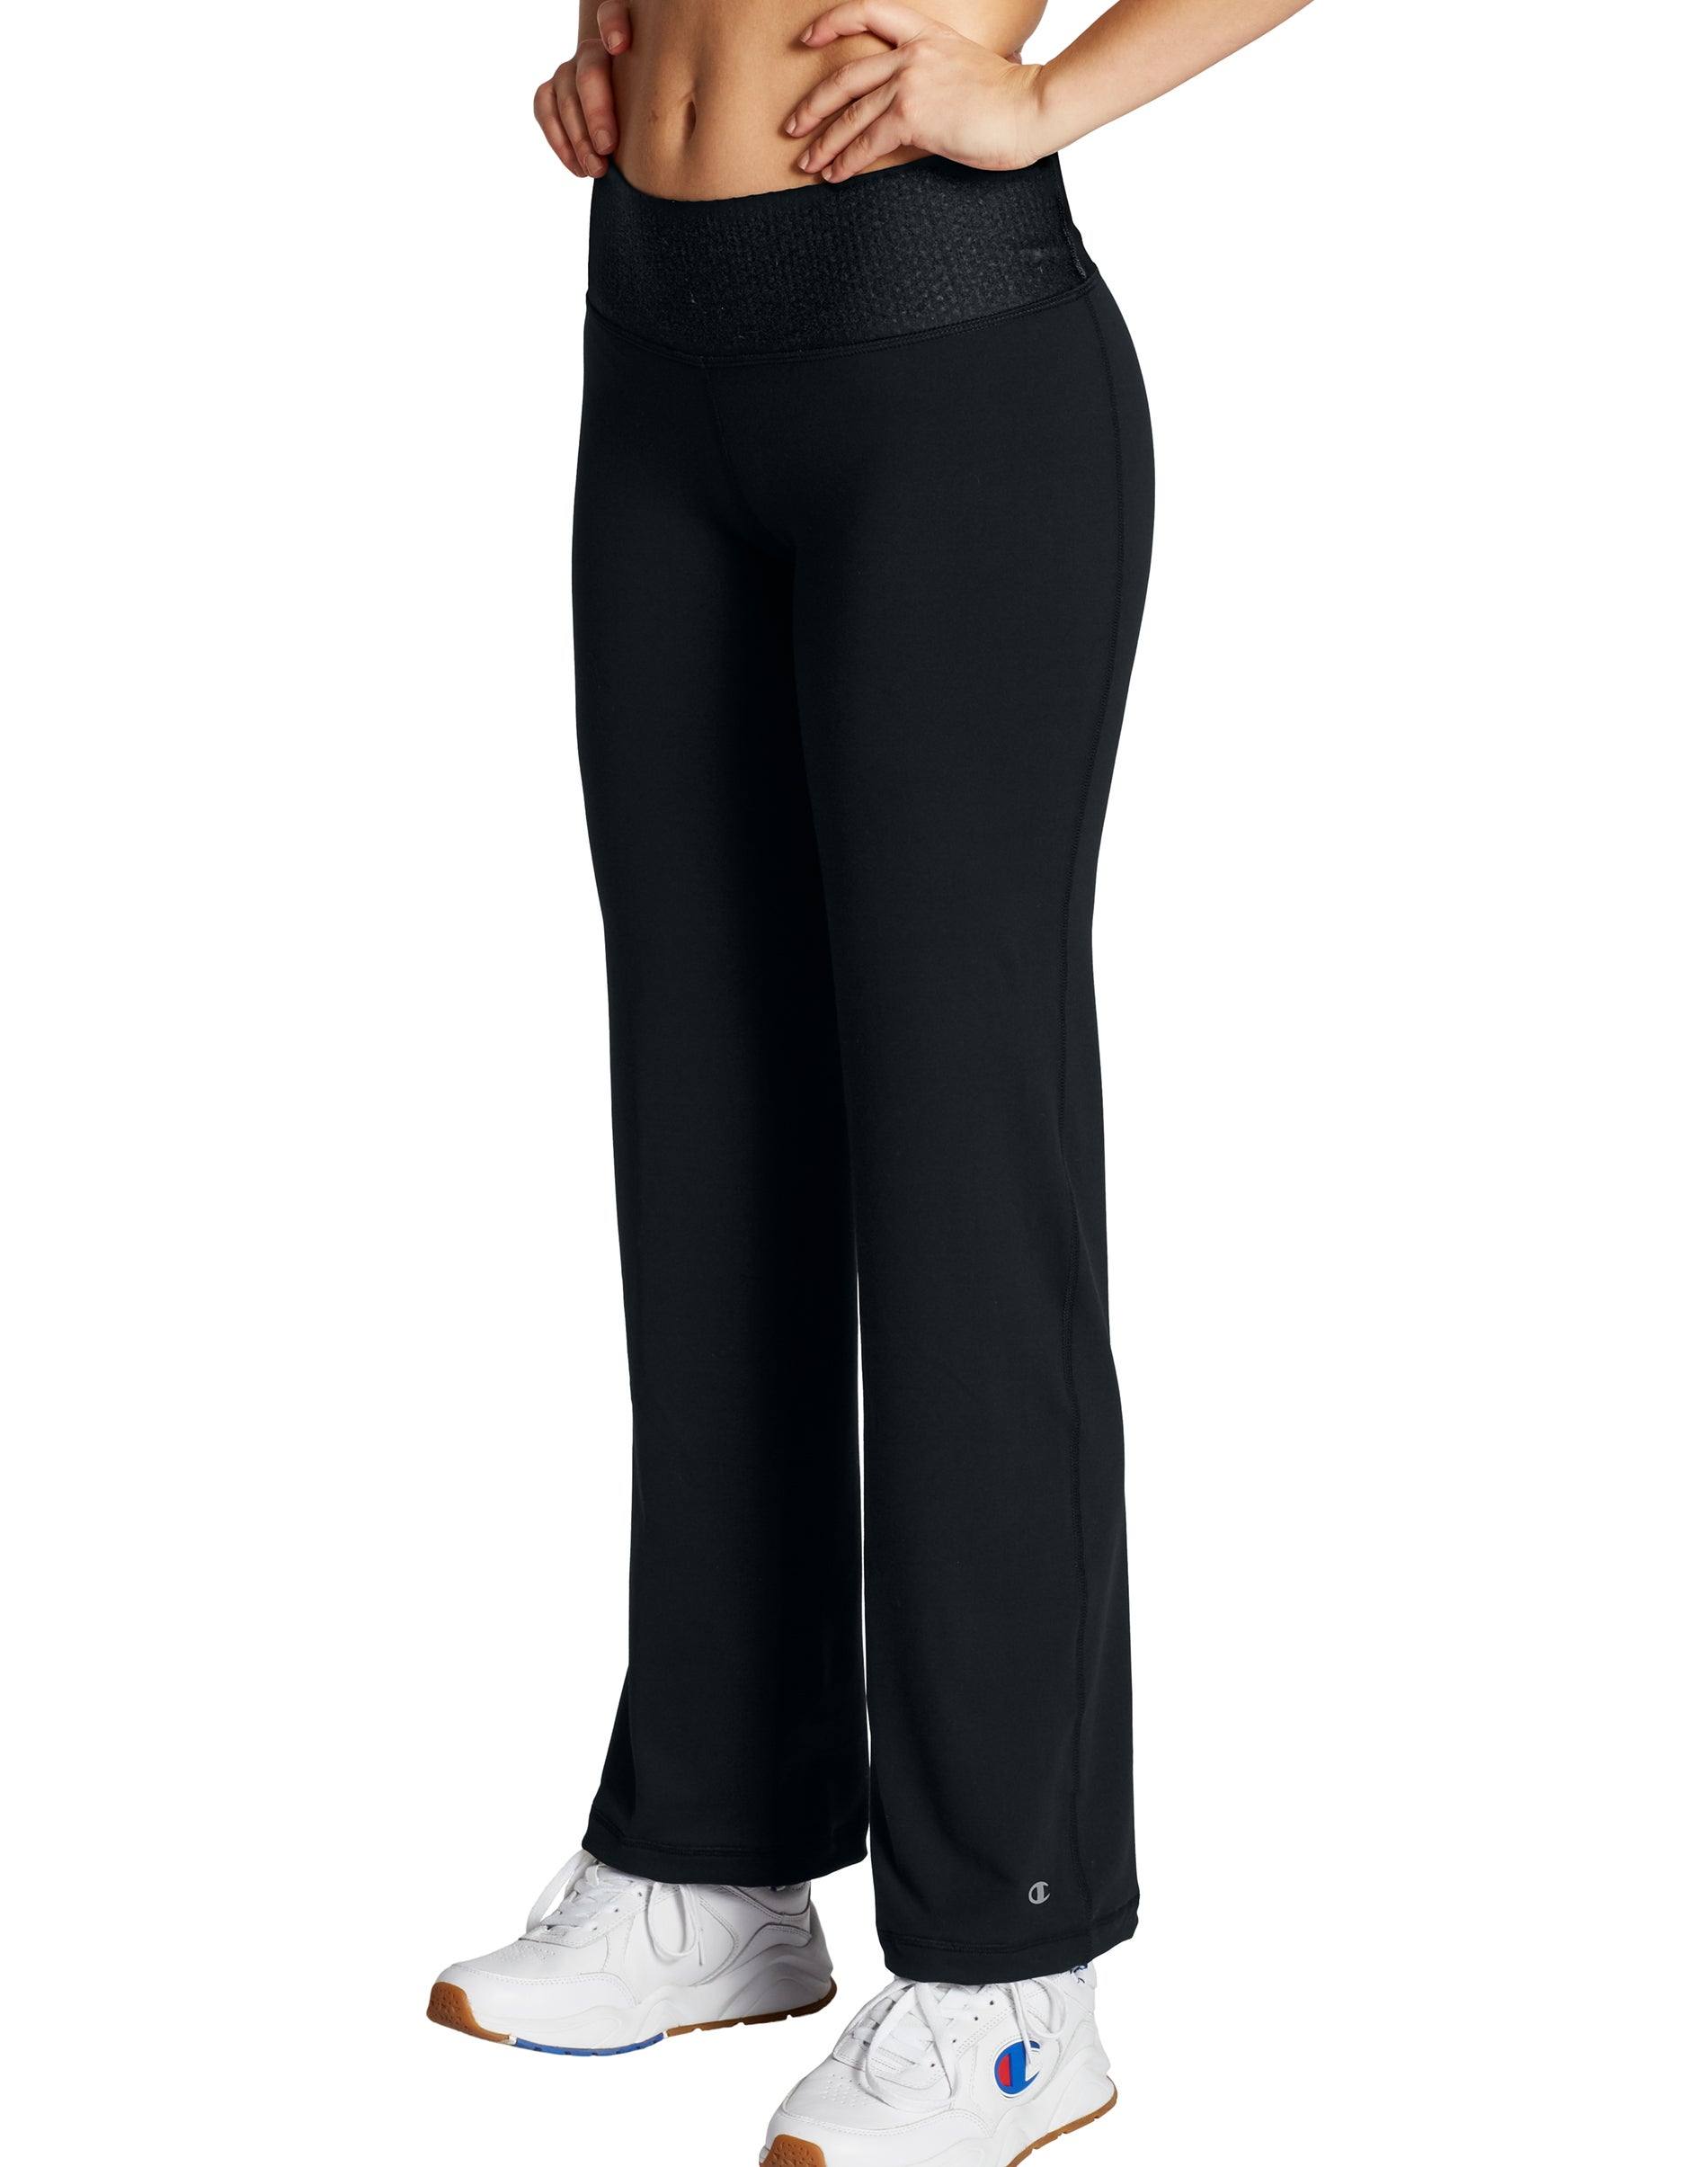 Champion Womens Pants Absolute Semi-Fit Workout SmoothTec Double Dry Open Bottom